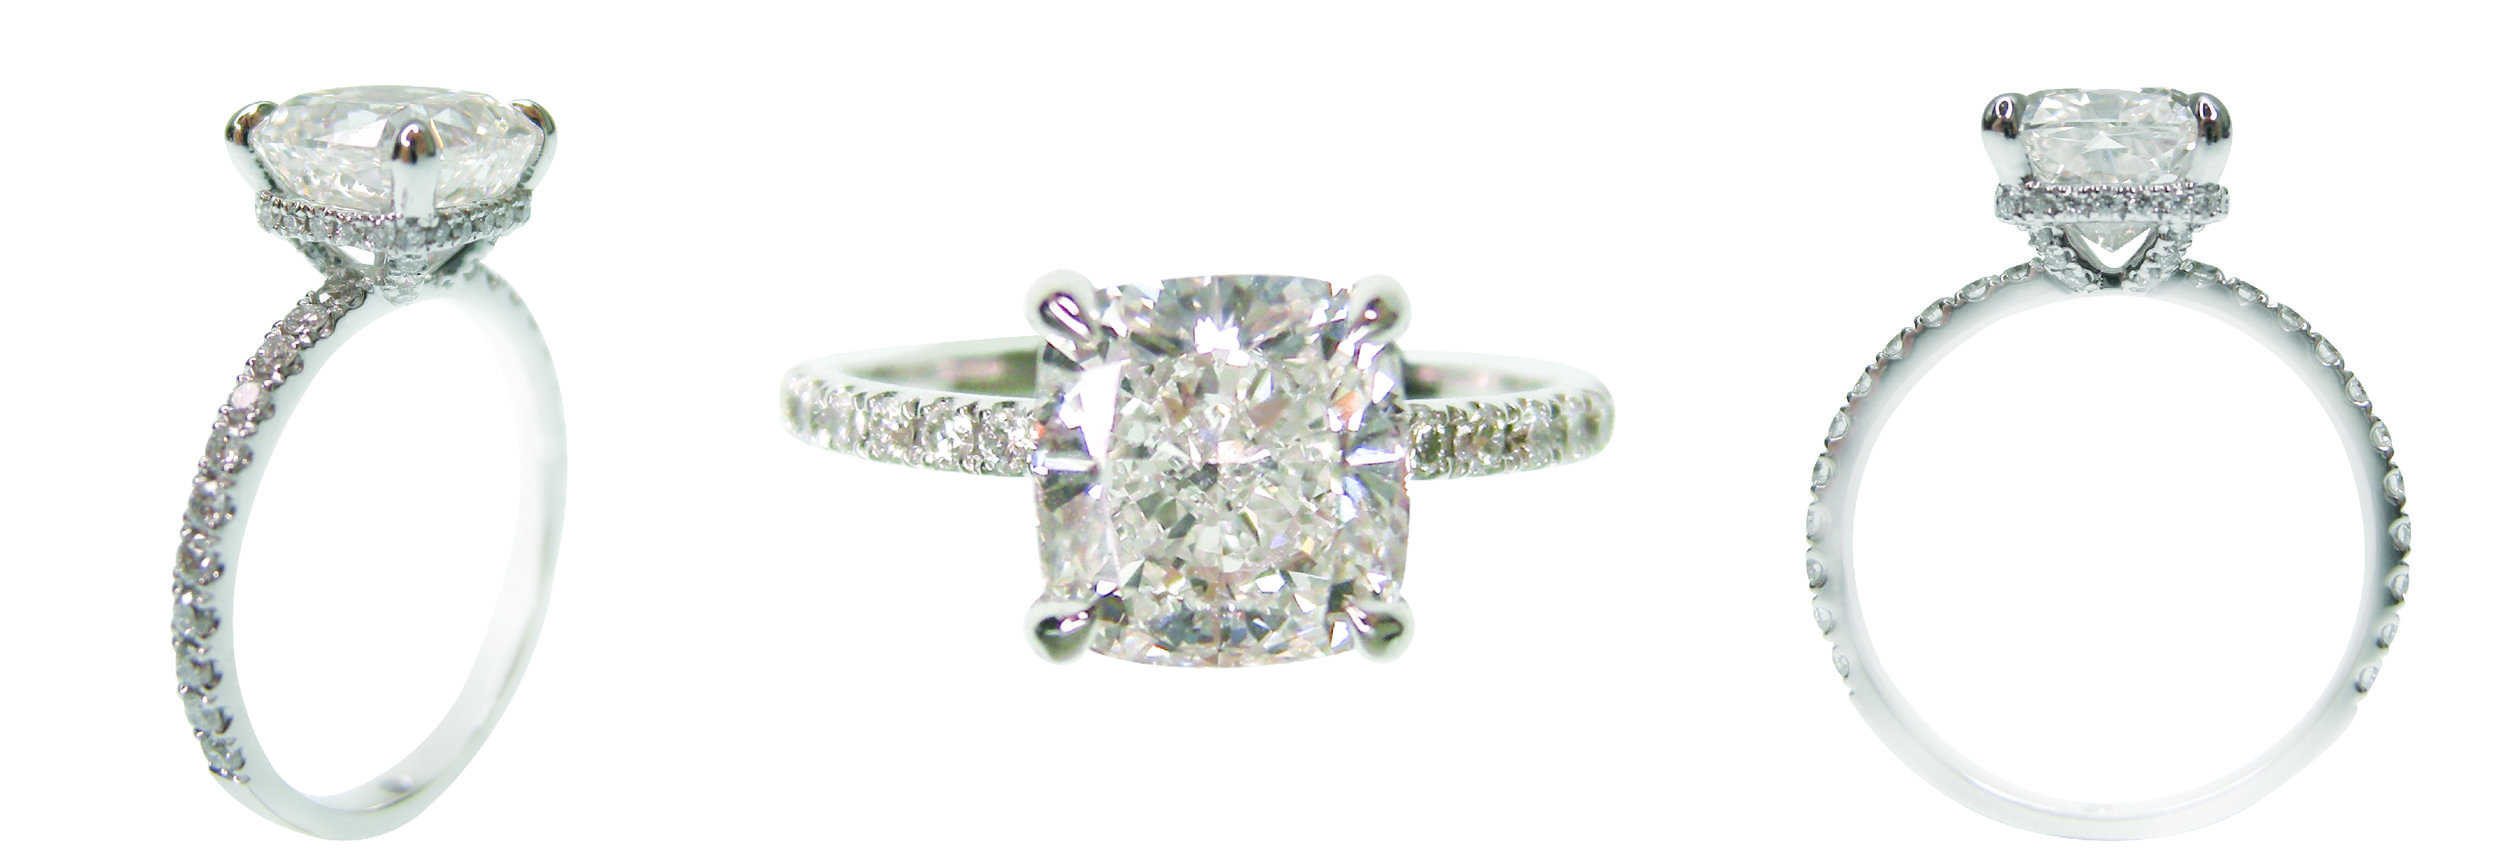 CUSHION CUT SOLITAIRE WITH MICROPAVE BAND